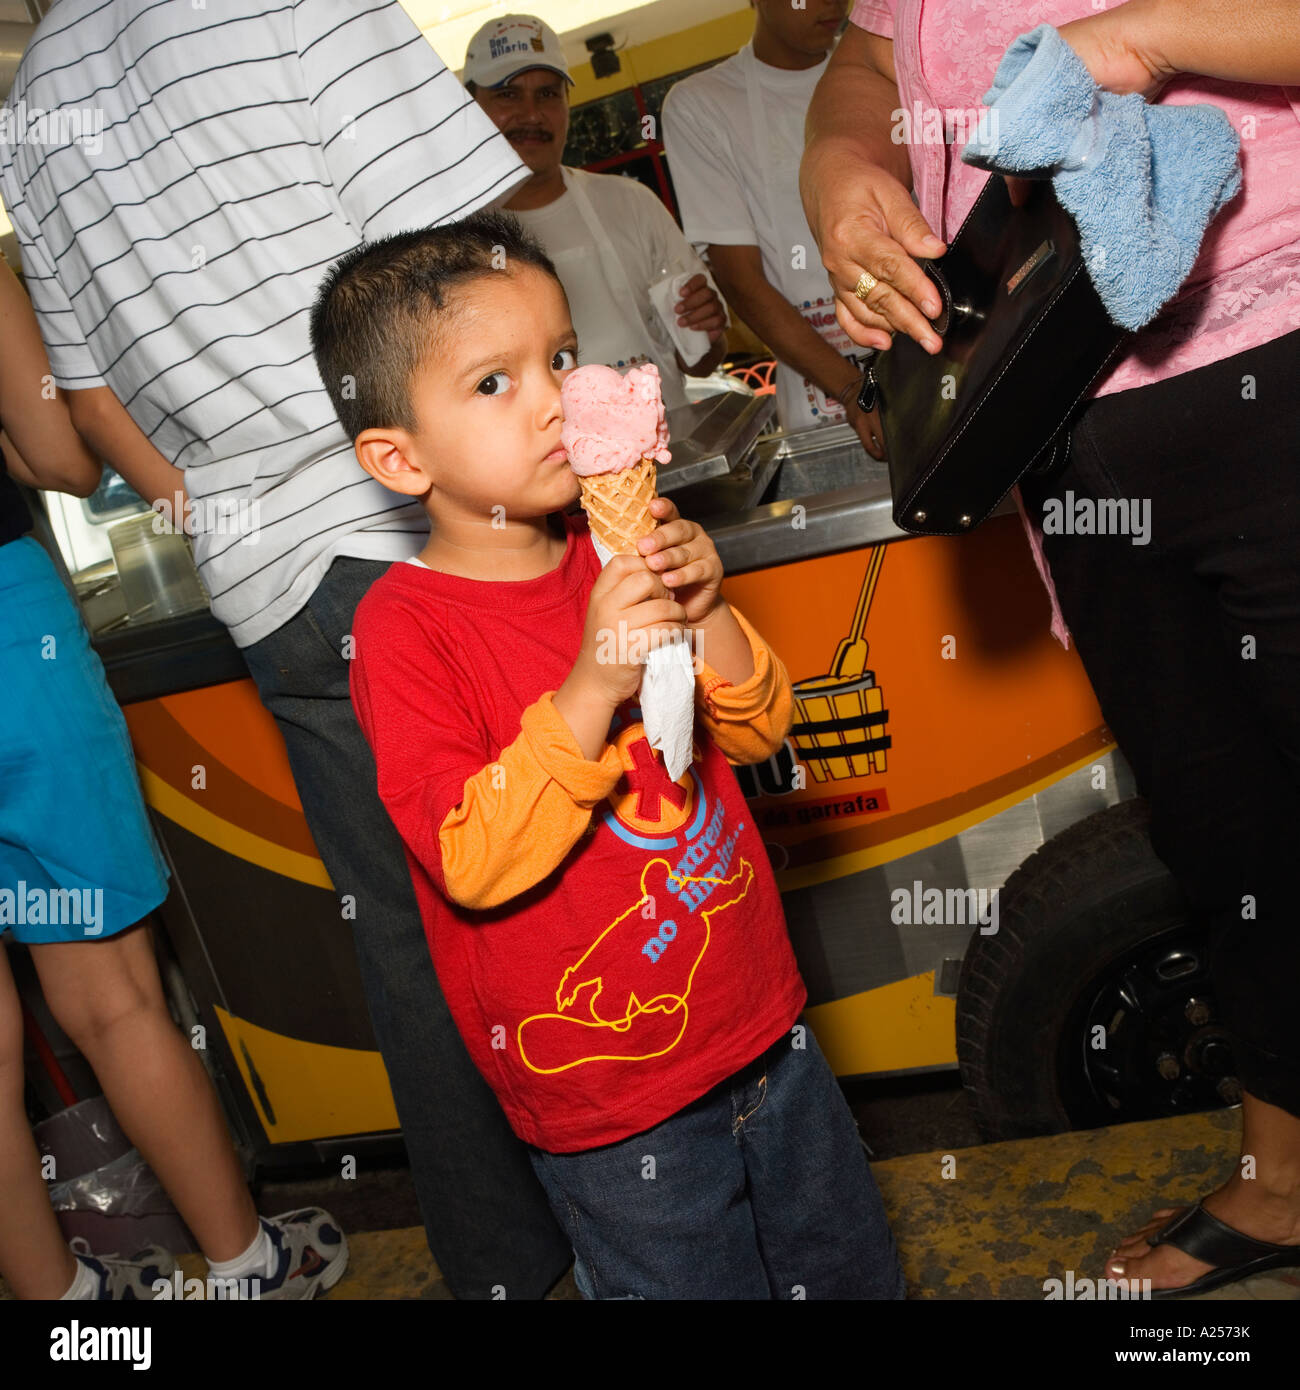 Boy eating ice-cream on the streets of downtown Mazatlan Mexico - Stock Image